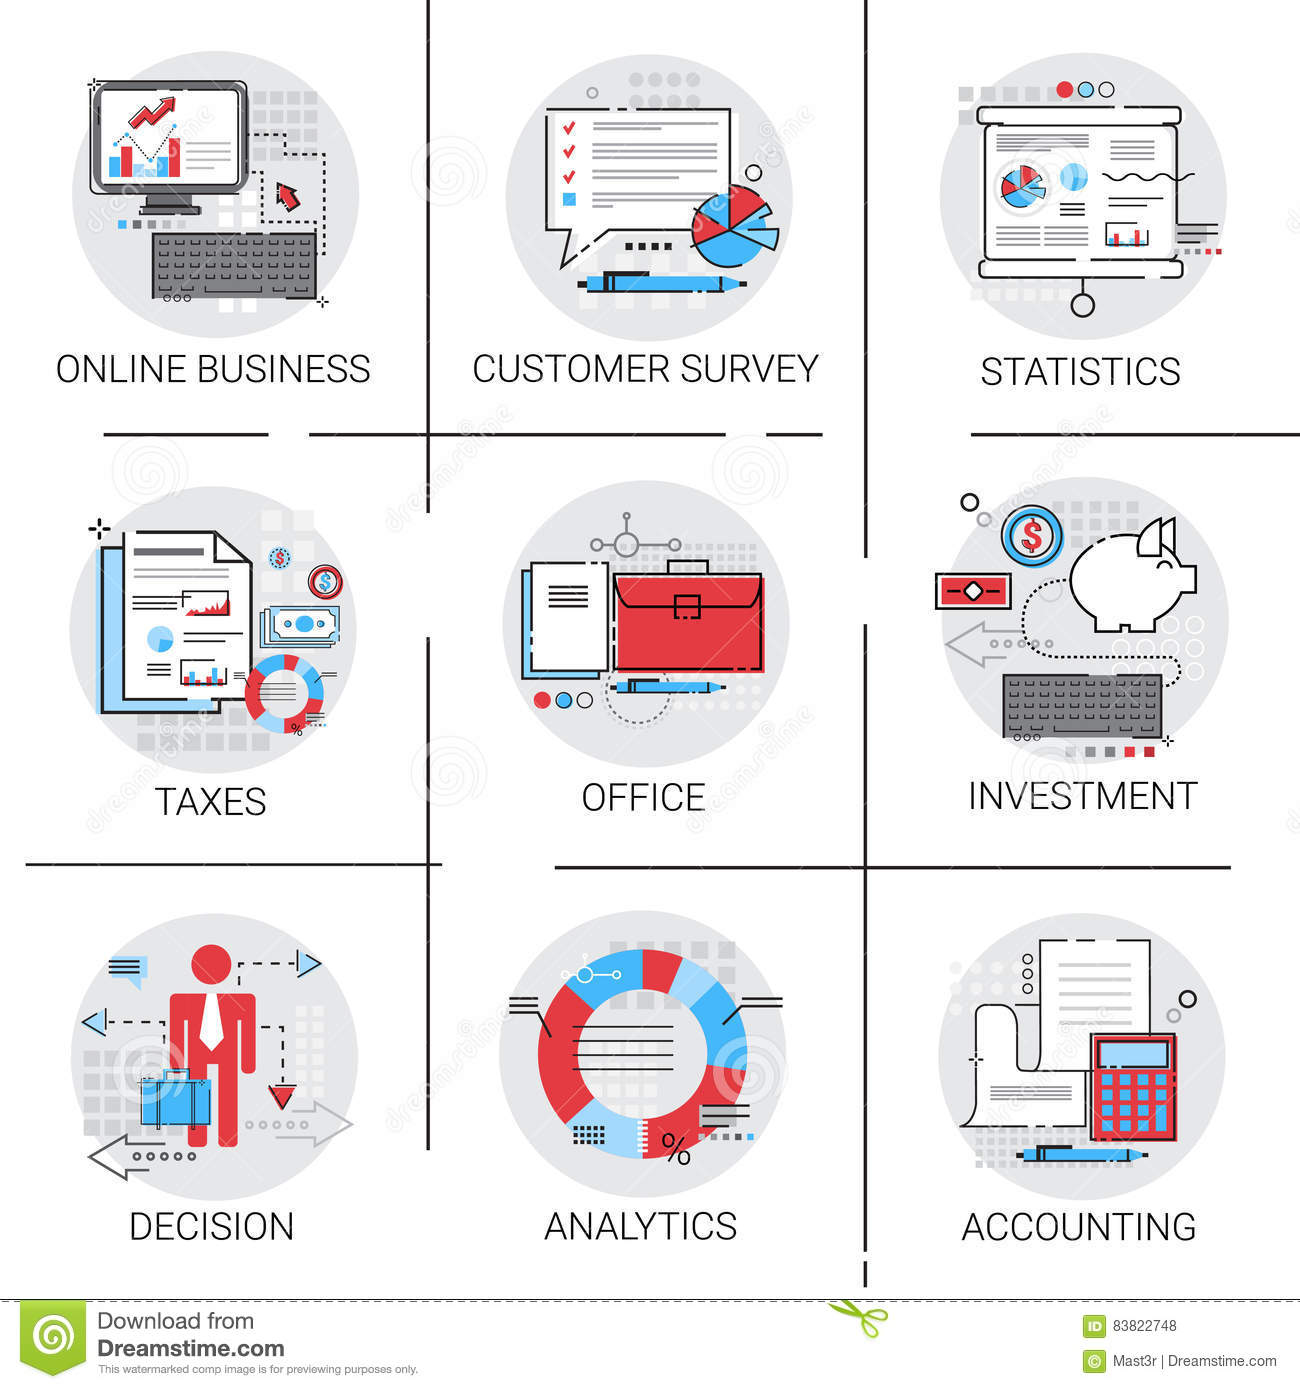 Office Diagram Online Trusted Wiring Diagrams Business Analysis Statistics Finance Work Icon 1